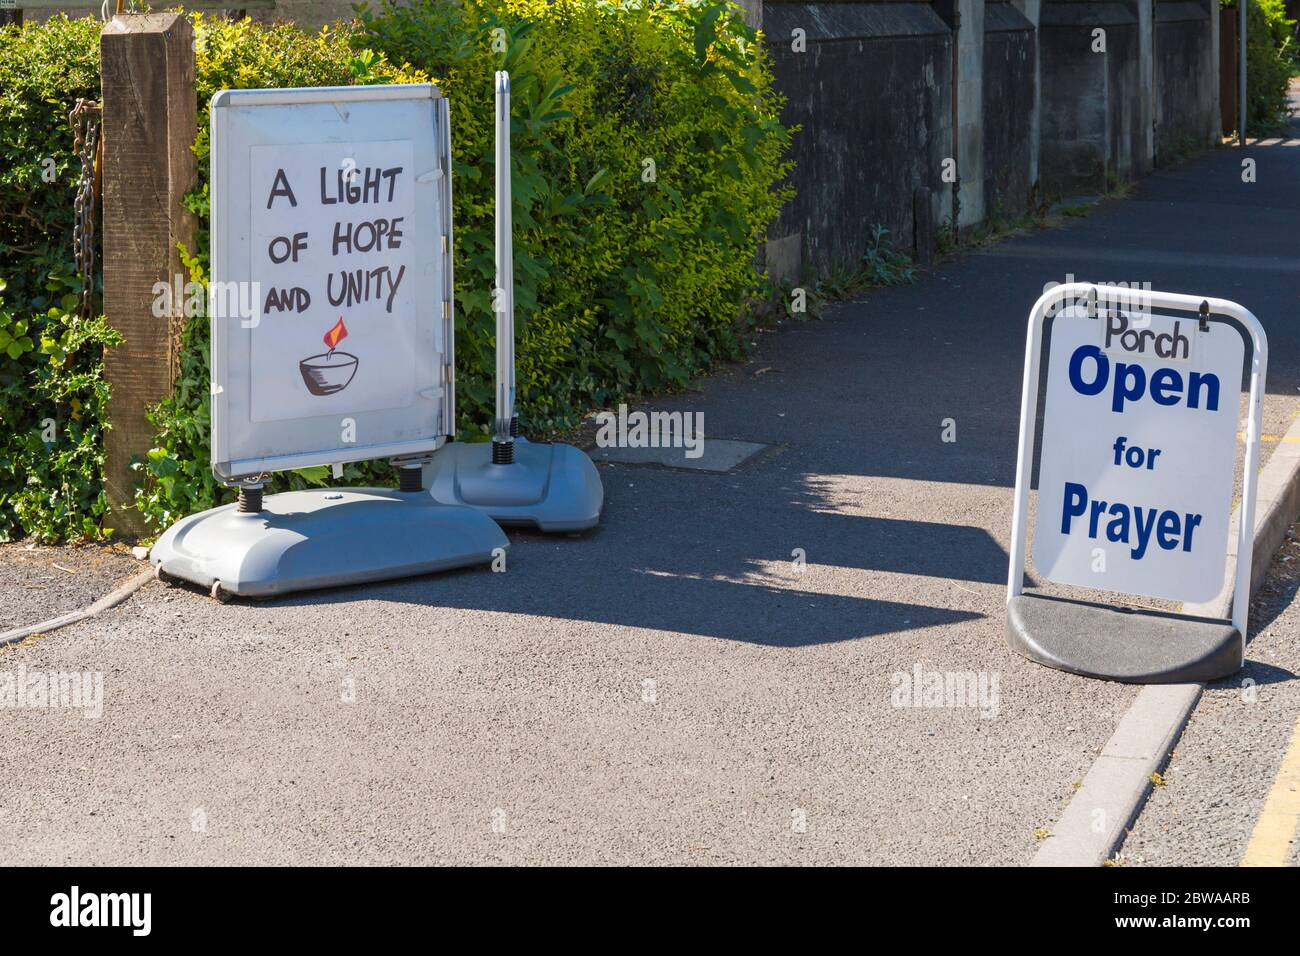 Poole, Dorset UK. 31st May 2020. A light of hope and unity - porch open for prayer signs outside St Aldhelm's Church, Branksome, Poole during Coronavirus Covid 19 pandemic lockdown. Credit: Carolyn Jenkins/Alamy Live News Stock Photo